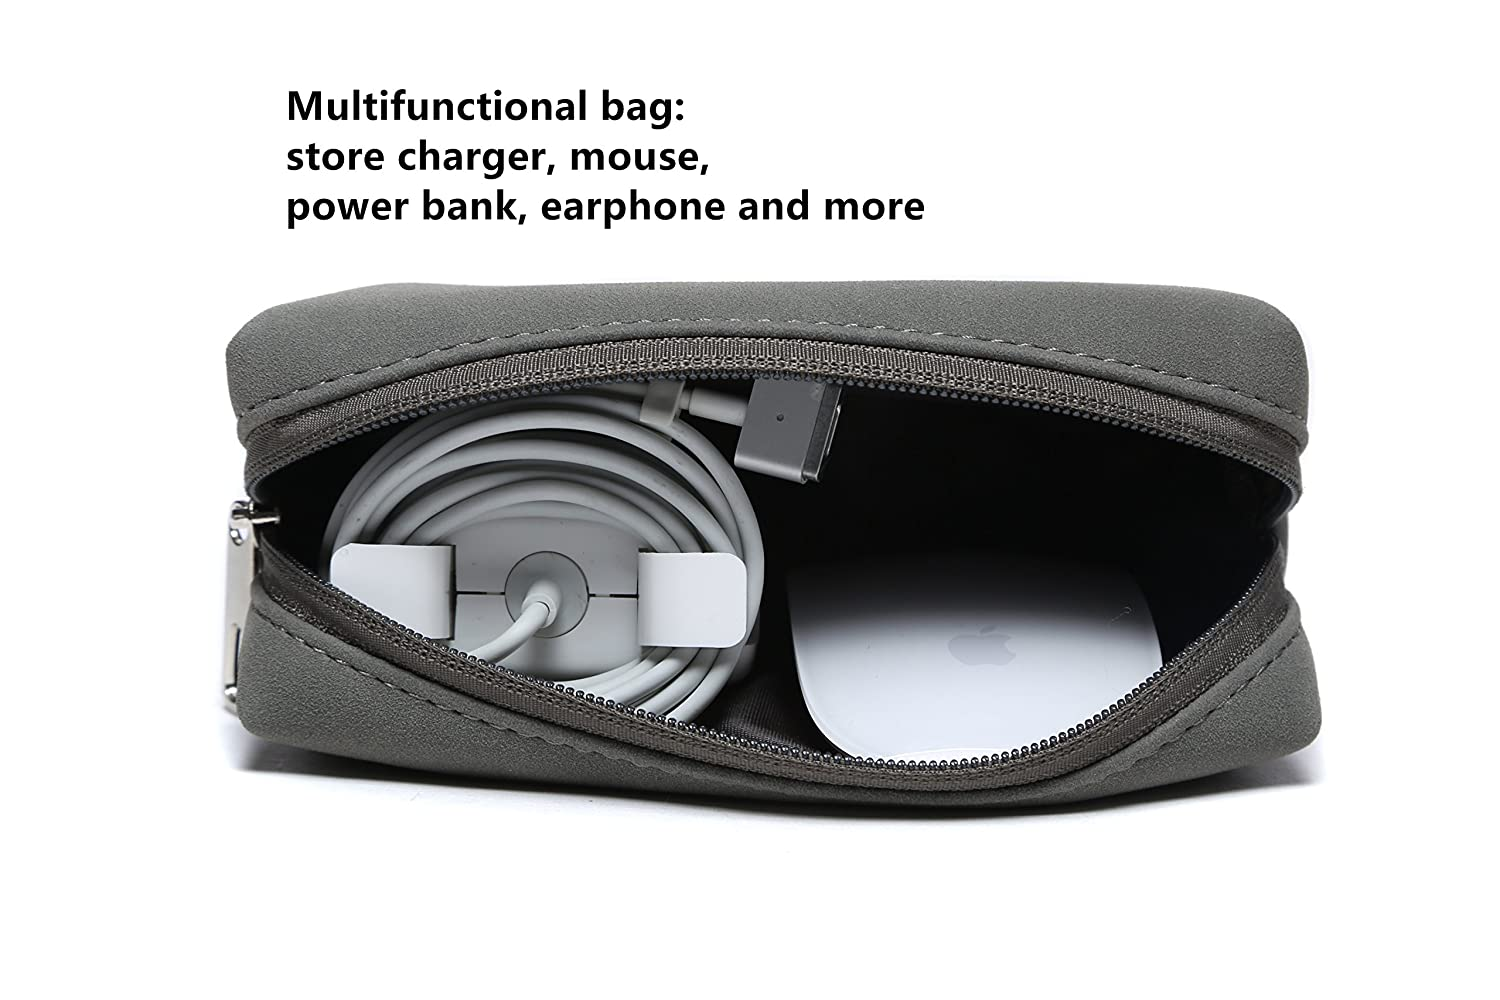 HYZUO Portable Laptop Accessory Pouch Bag Organizer Storage Carrying Case for Laptop Charger Mouse Cables Electronics Cellphone SSD HHD Matte PU Leather Dark Grey